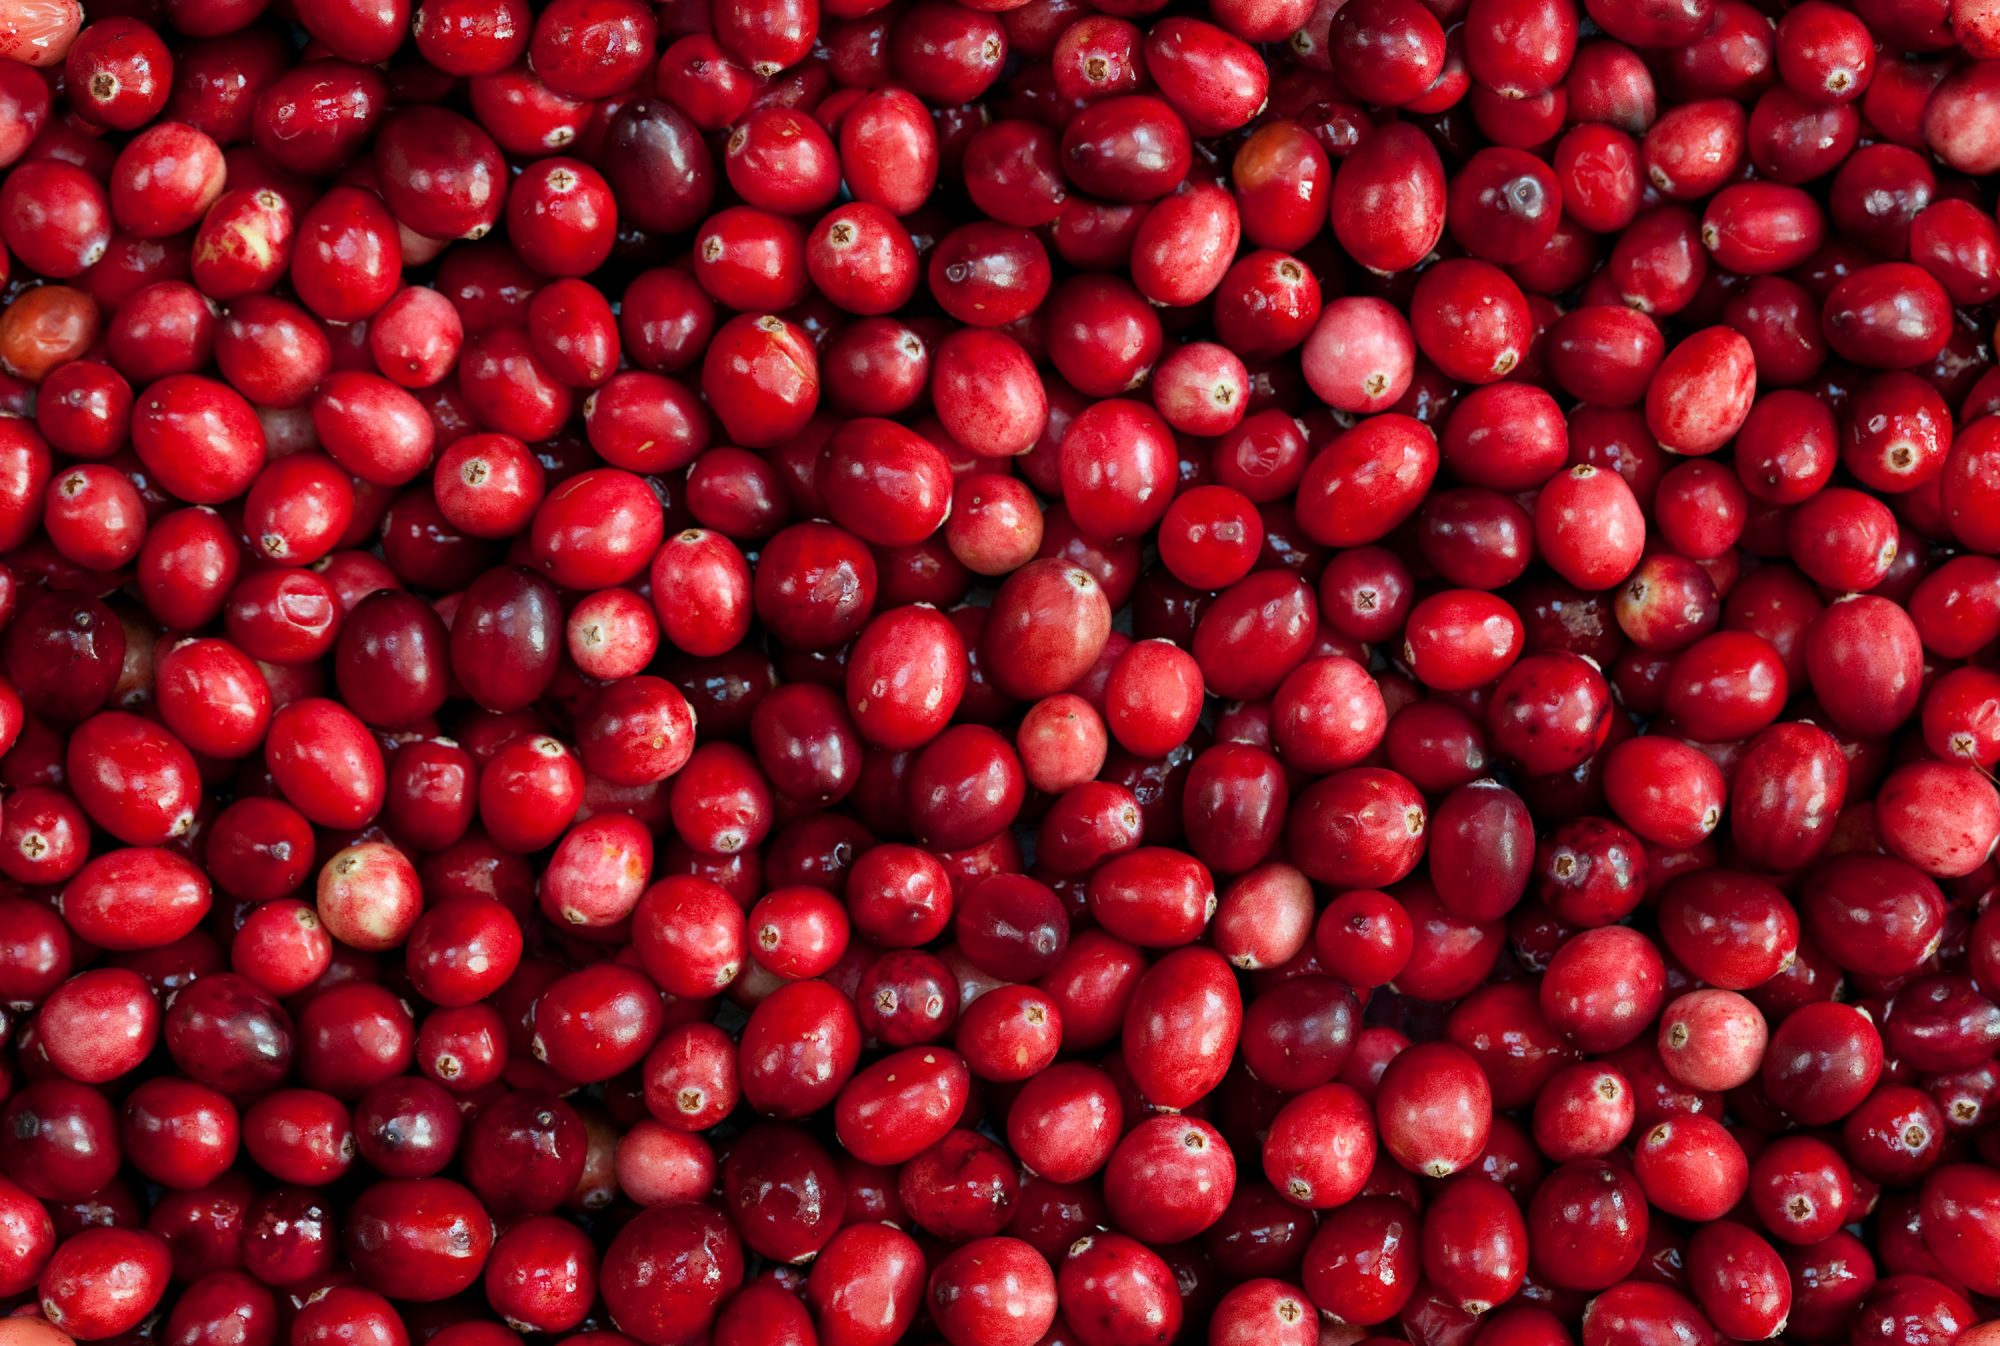 Do Cranberries REALLY Help with Urinary Tract Infections? An OB-GYN Sets the Record Straight